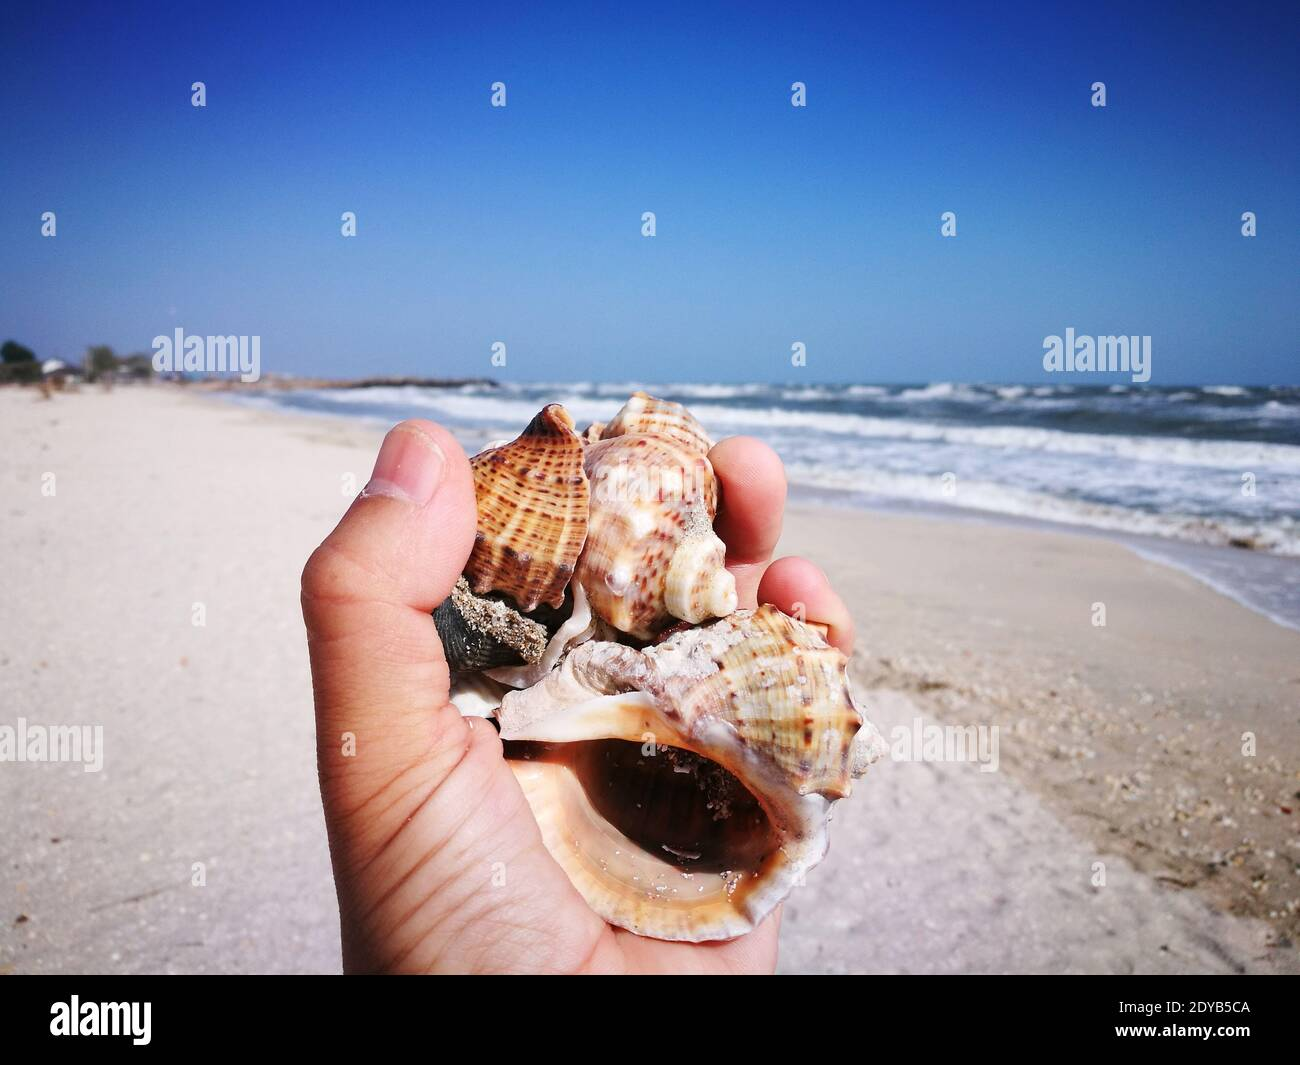 Midsection Of Person Holding Shell At Beach Against Sky Stock Photo